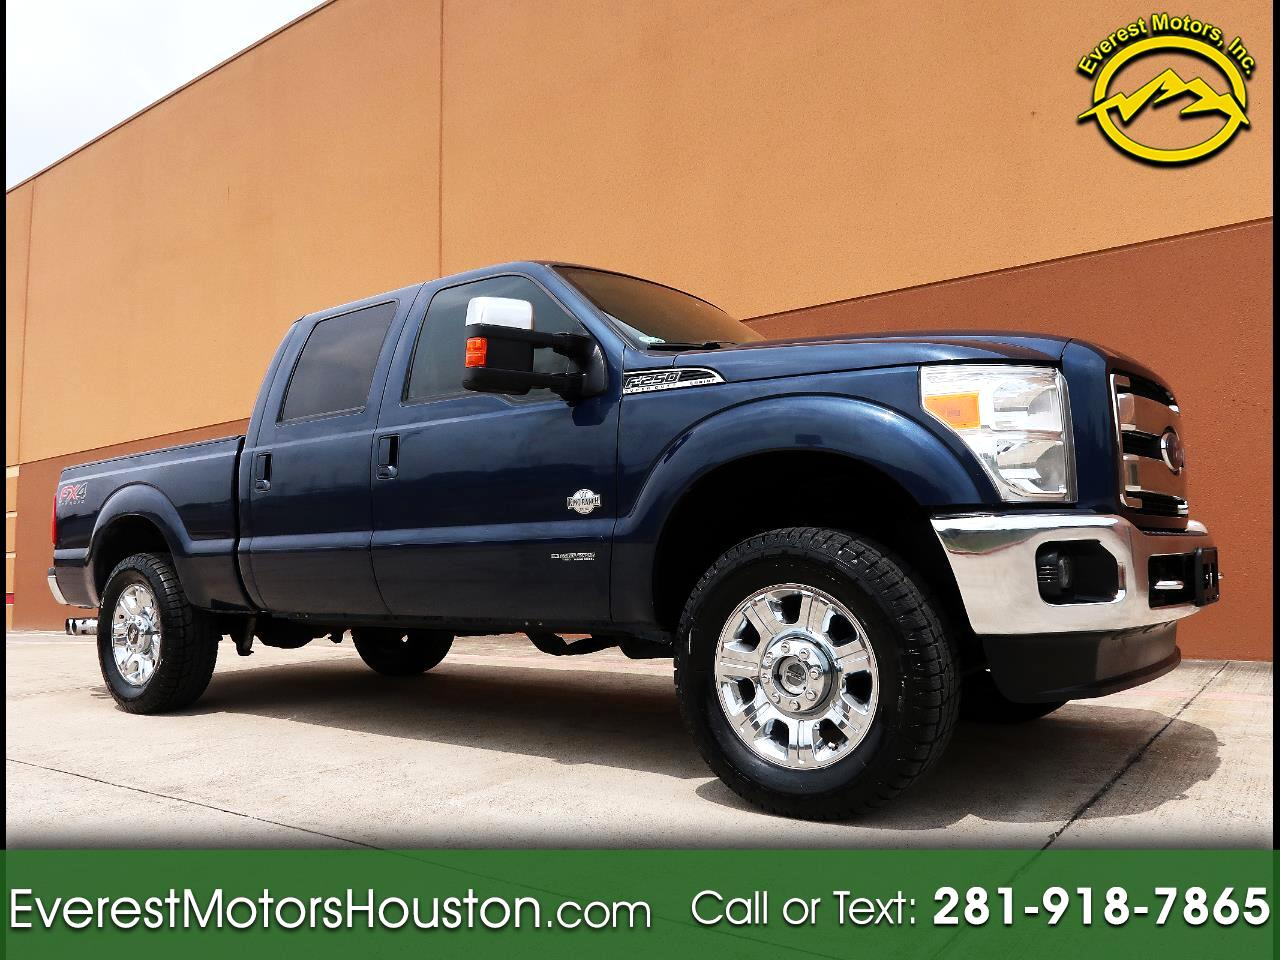 2015 Ford F-250 SD KING RANCH CREW CAB SHORT BED 4WD NAV CAM